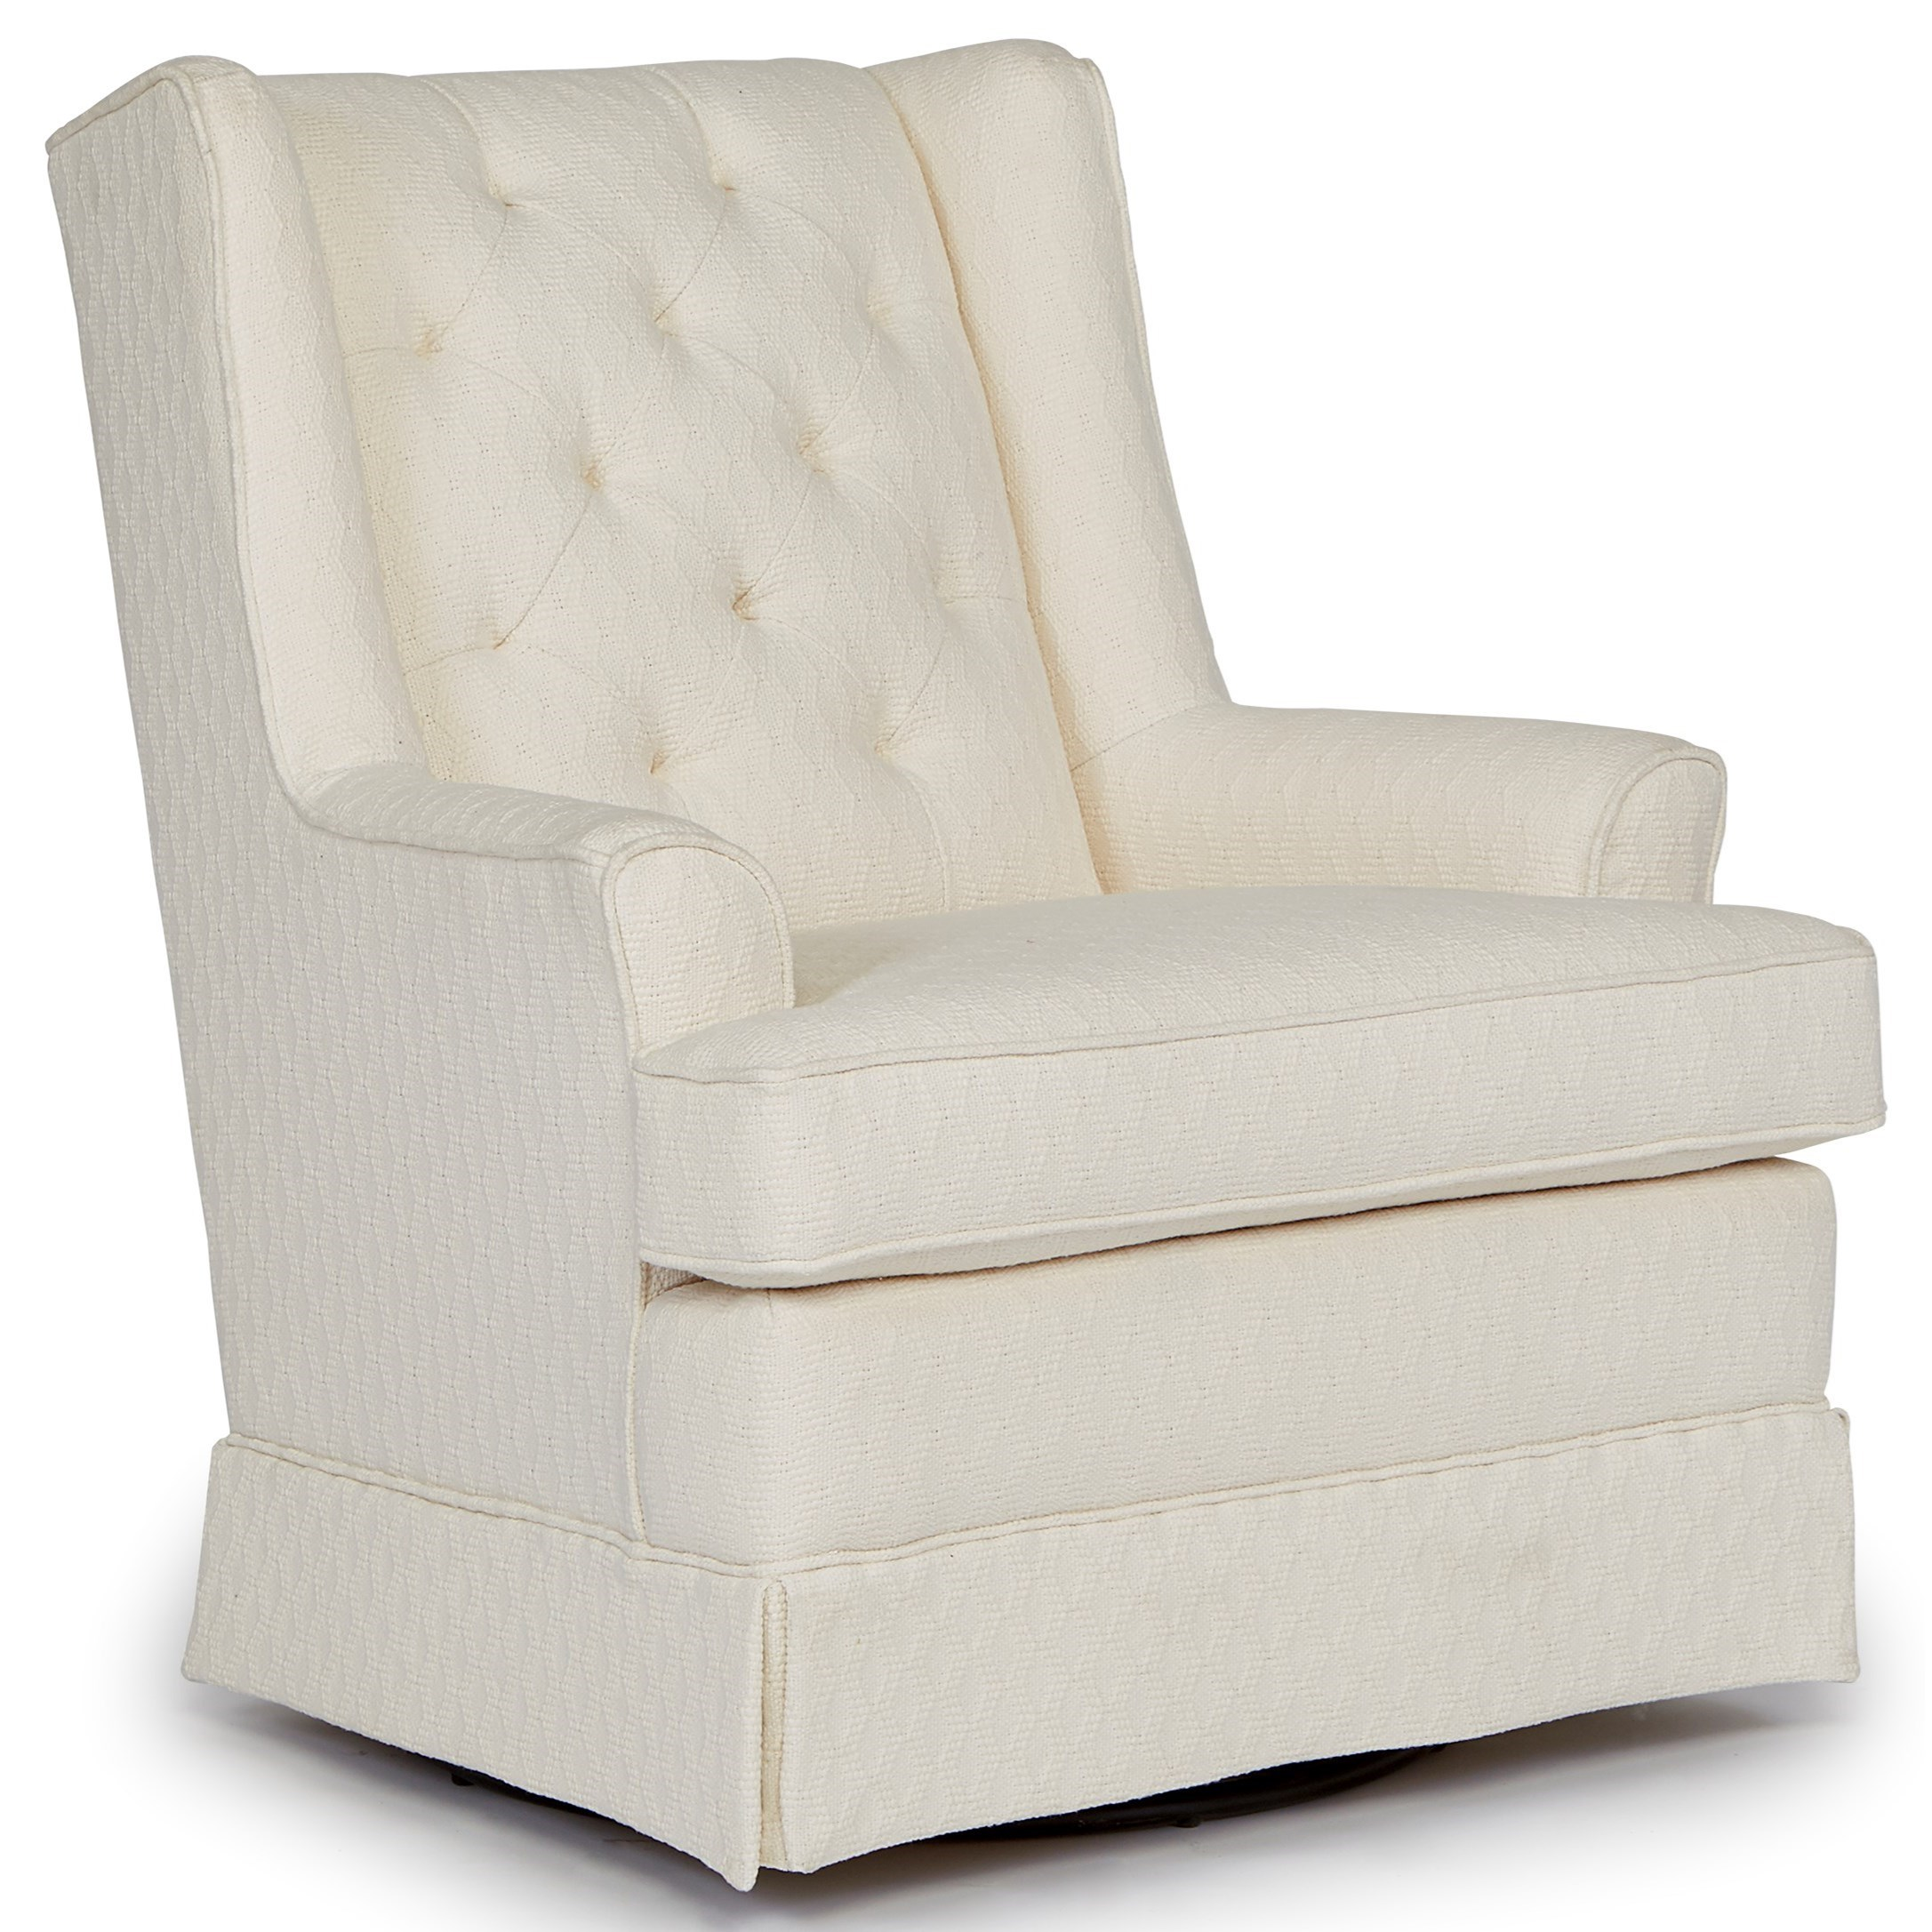 best chairs swivel glider royal chair covers home furnishings glide 7167 nikole skirted by